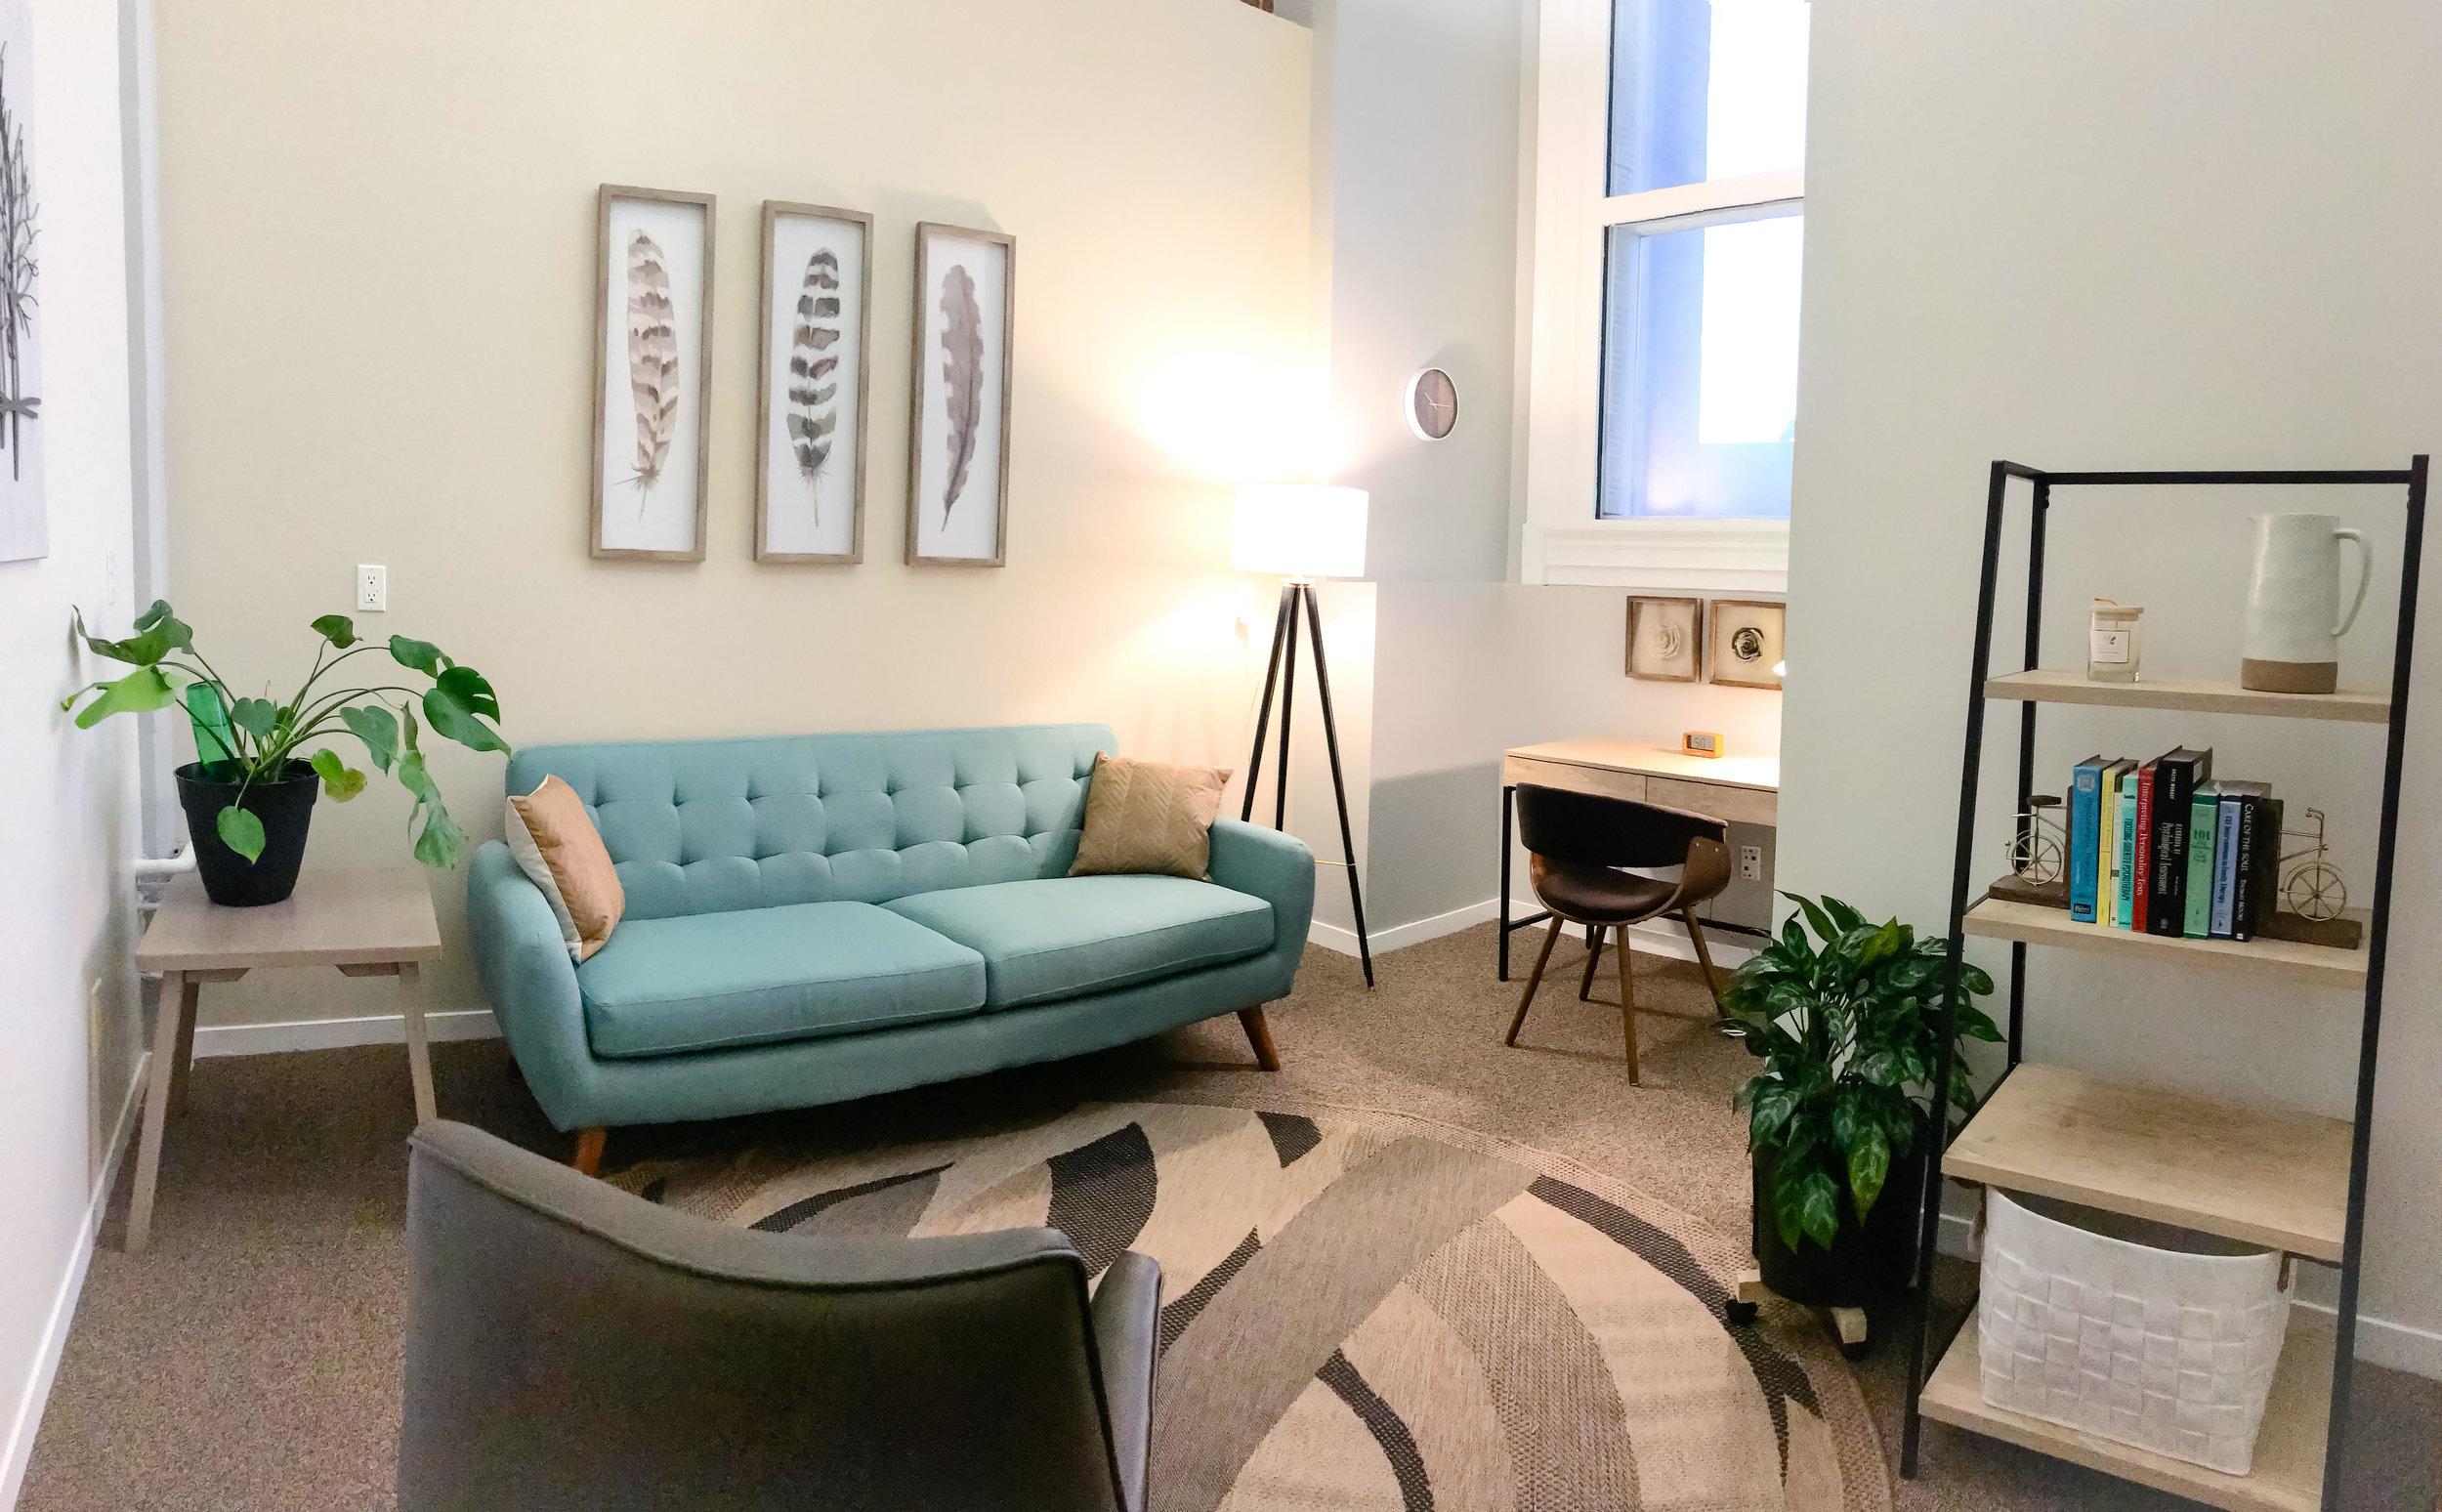 Reconnect & Heal. - Our spacious offices boast high ceilings, have lots of natural light, new furnishings and filtered water and tea to support you in your therapeutic process.